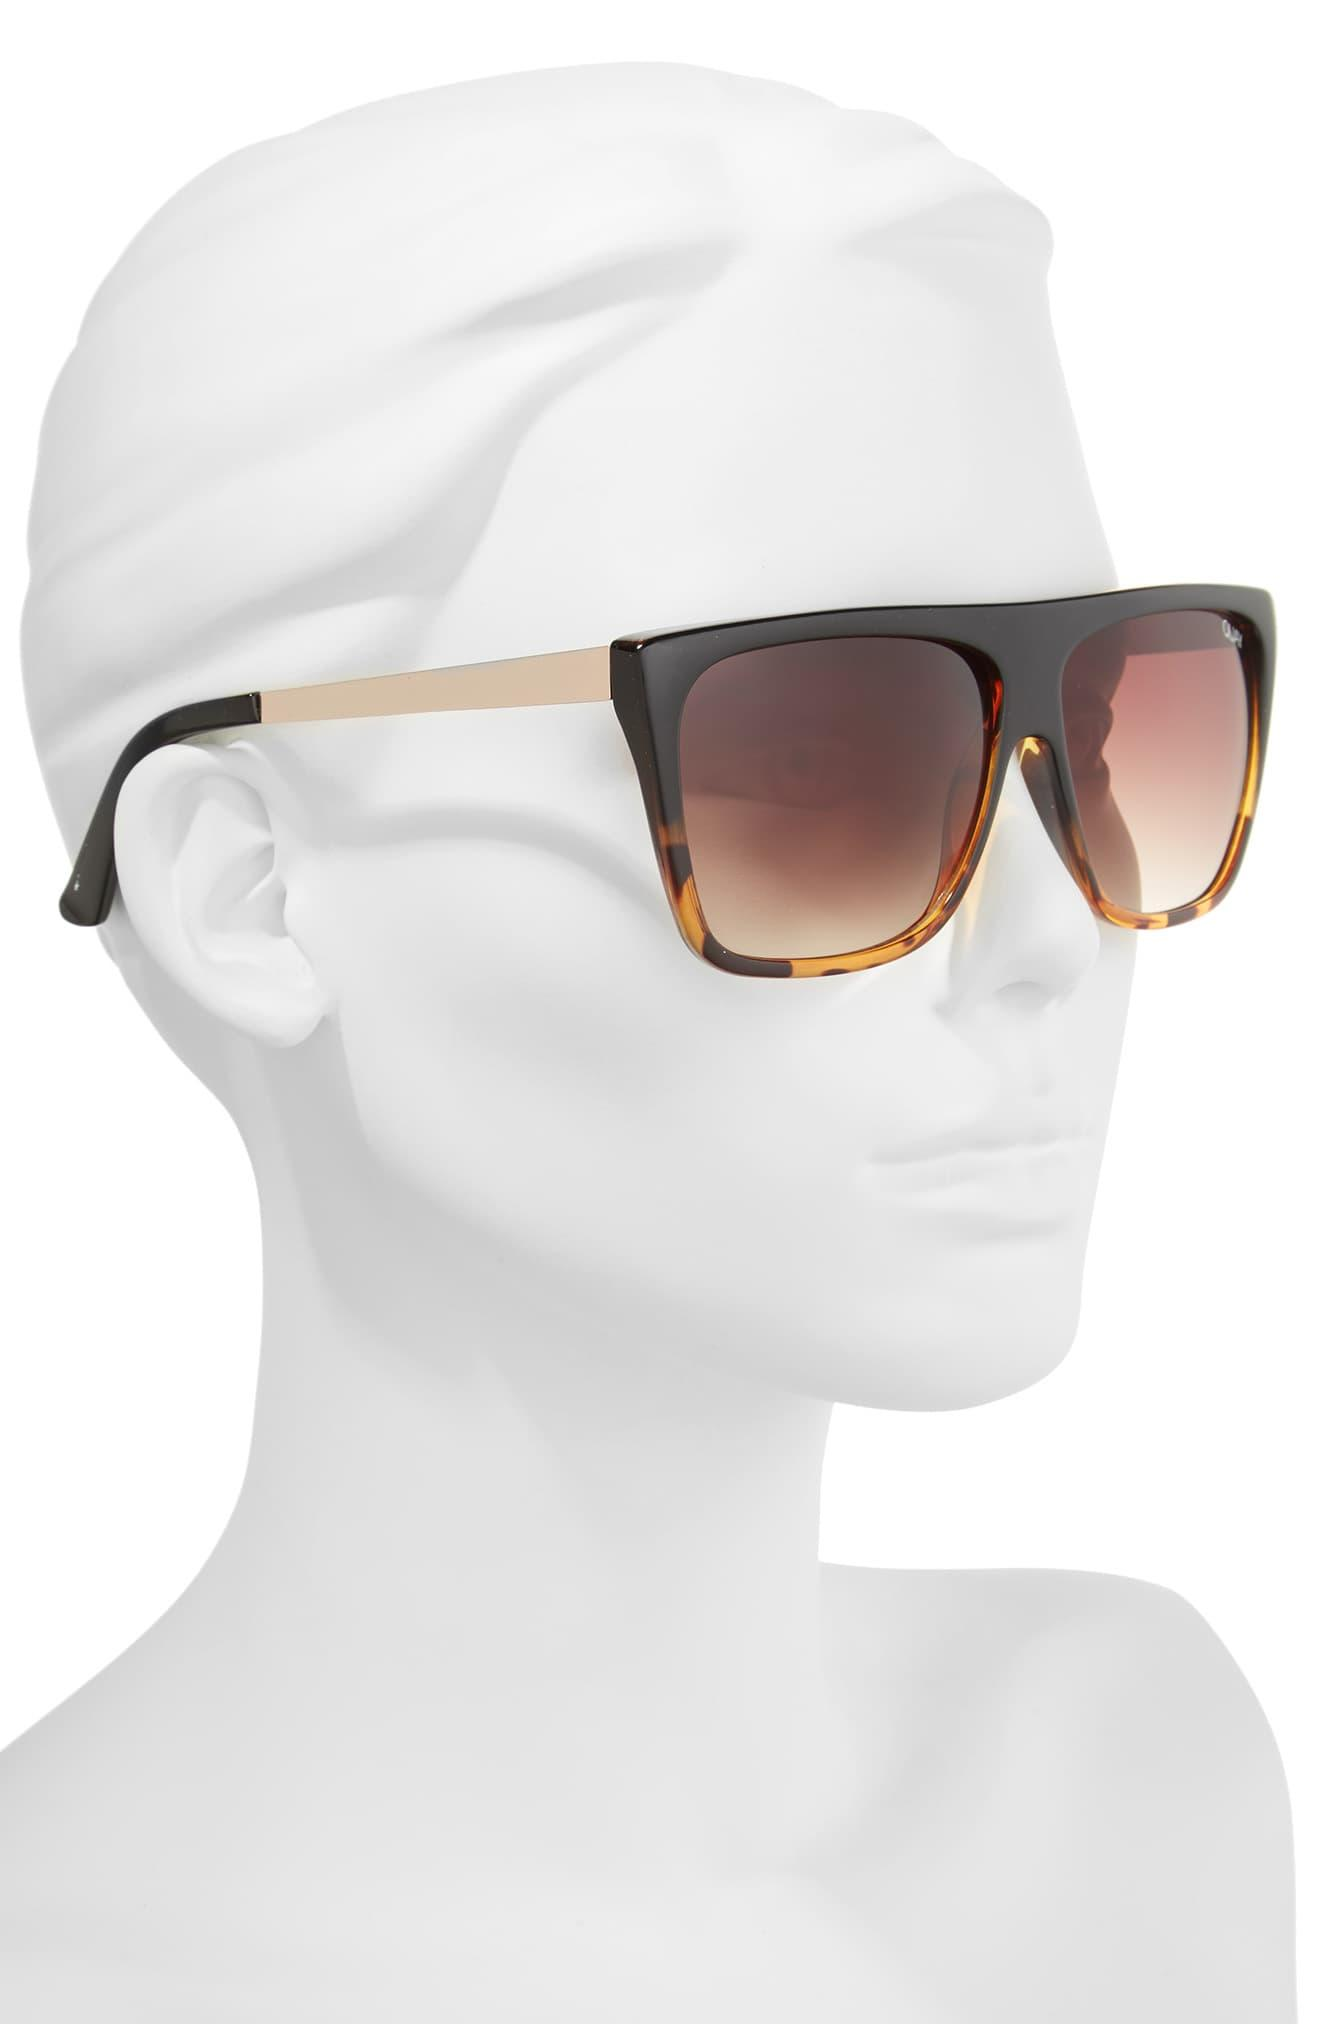 6a058e8c01060 Quay - X Desi Perkins On The Low 60mm Square Sunglasses - Tort  Brown -.  View fullscreen